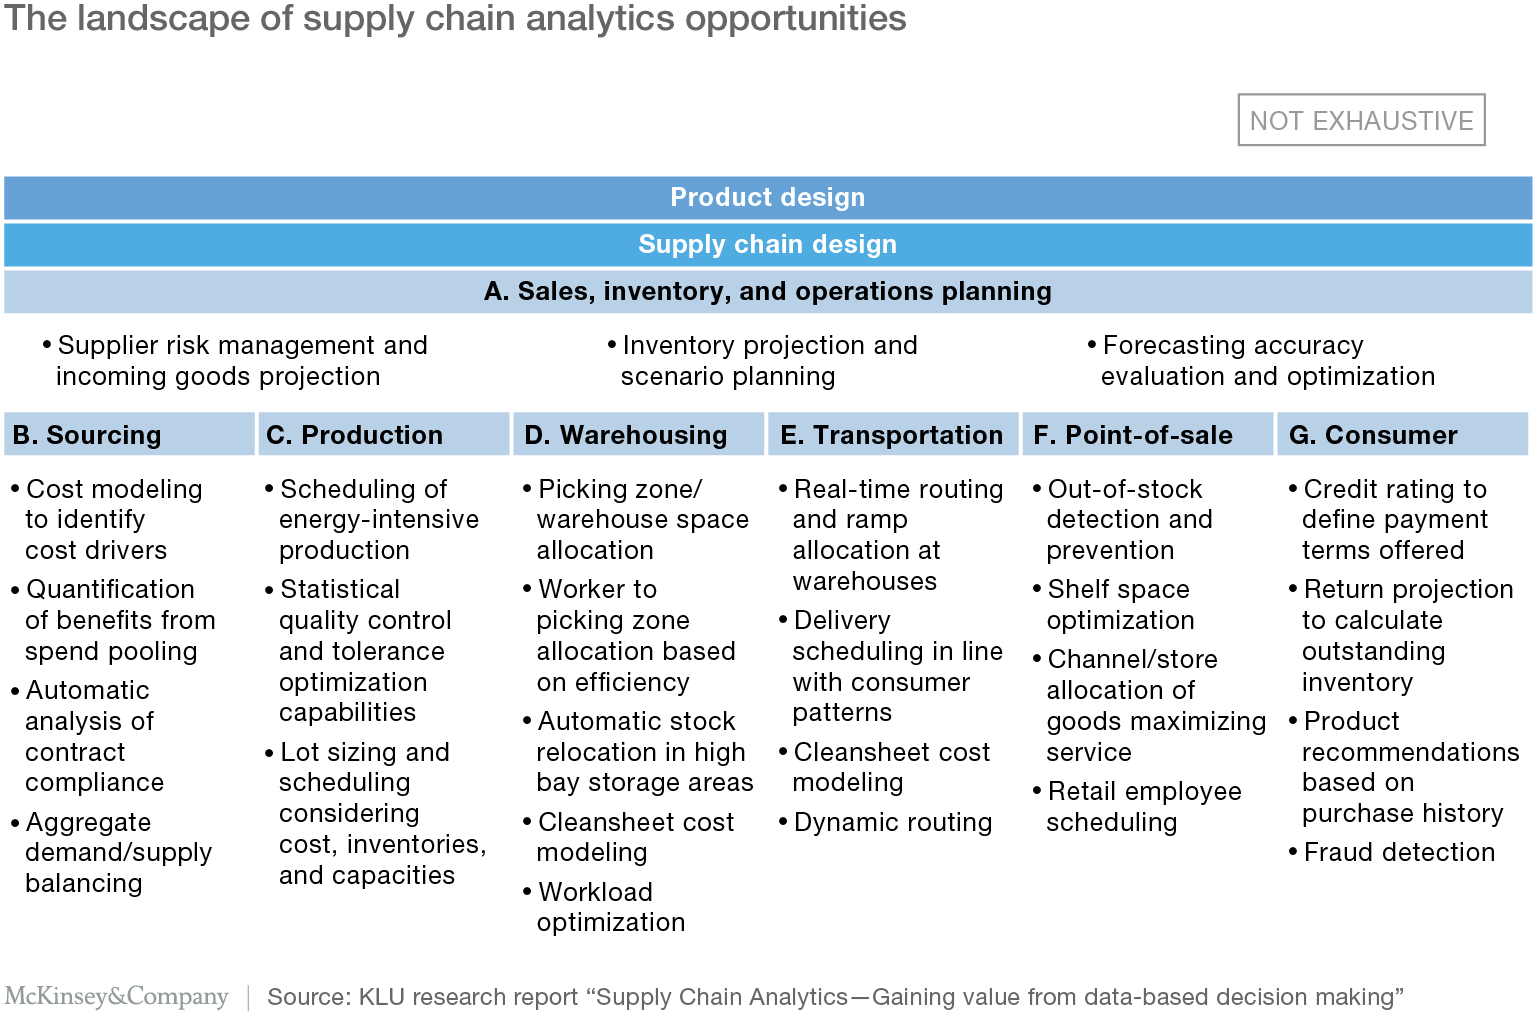 Big data and the supply chain: The big-supply-chain analytics